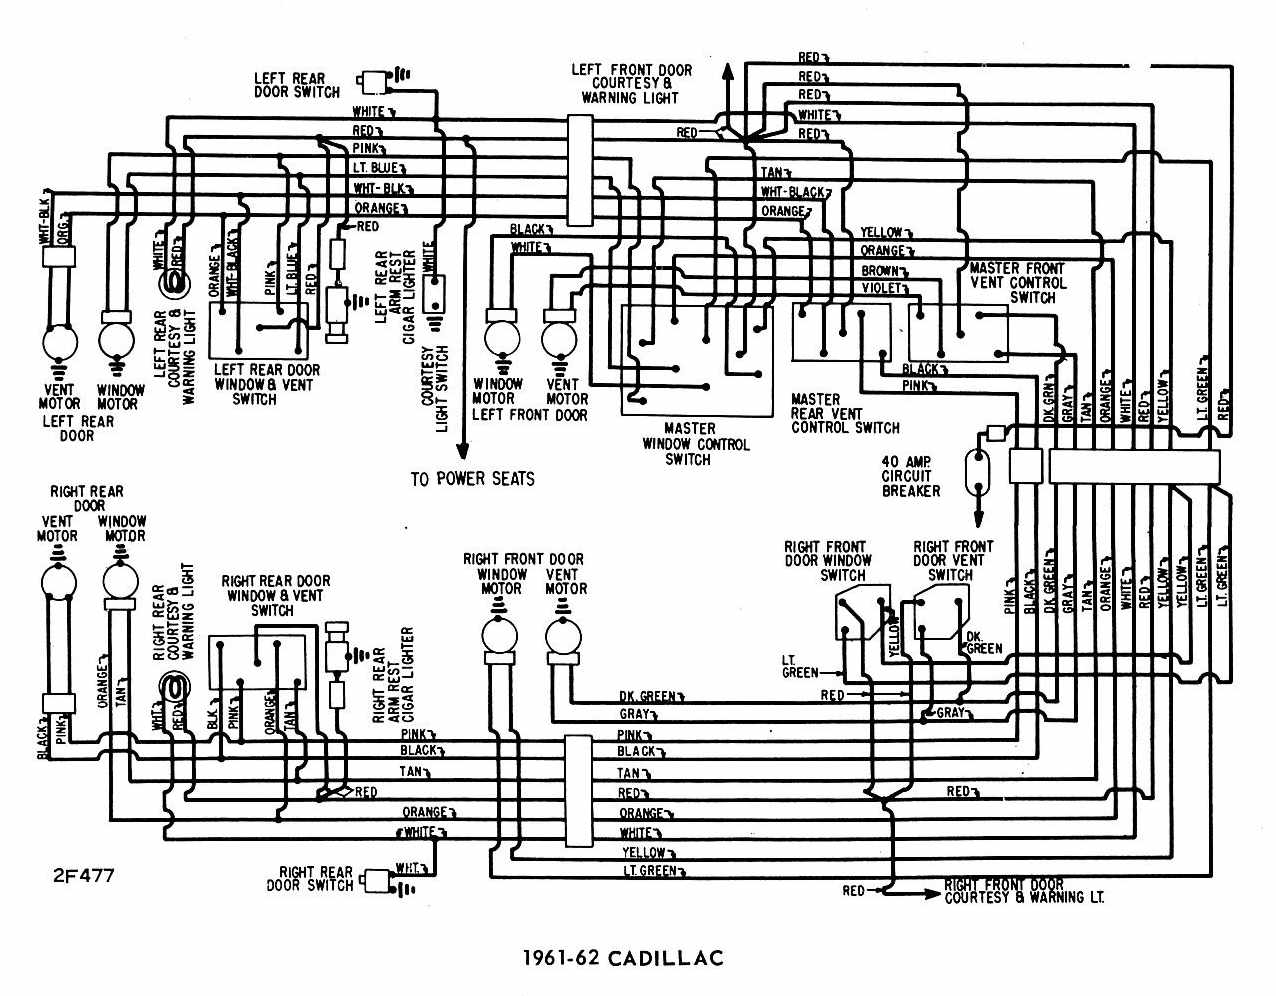 Cadillac Car Manuals Wiring Diagrams Pdf Fault Codes Escalade 2009 Fuse Box Download